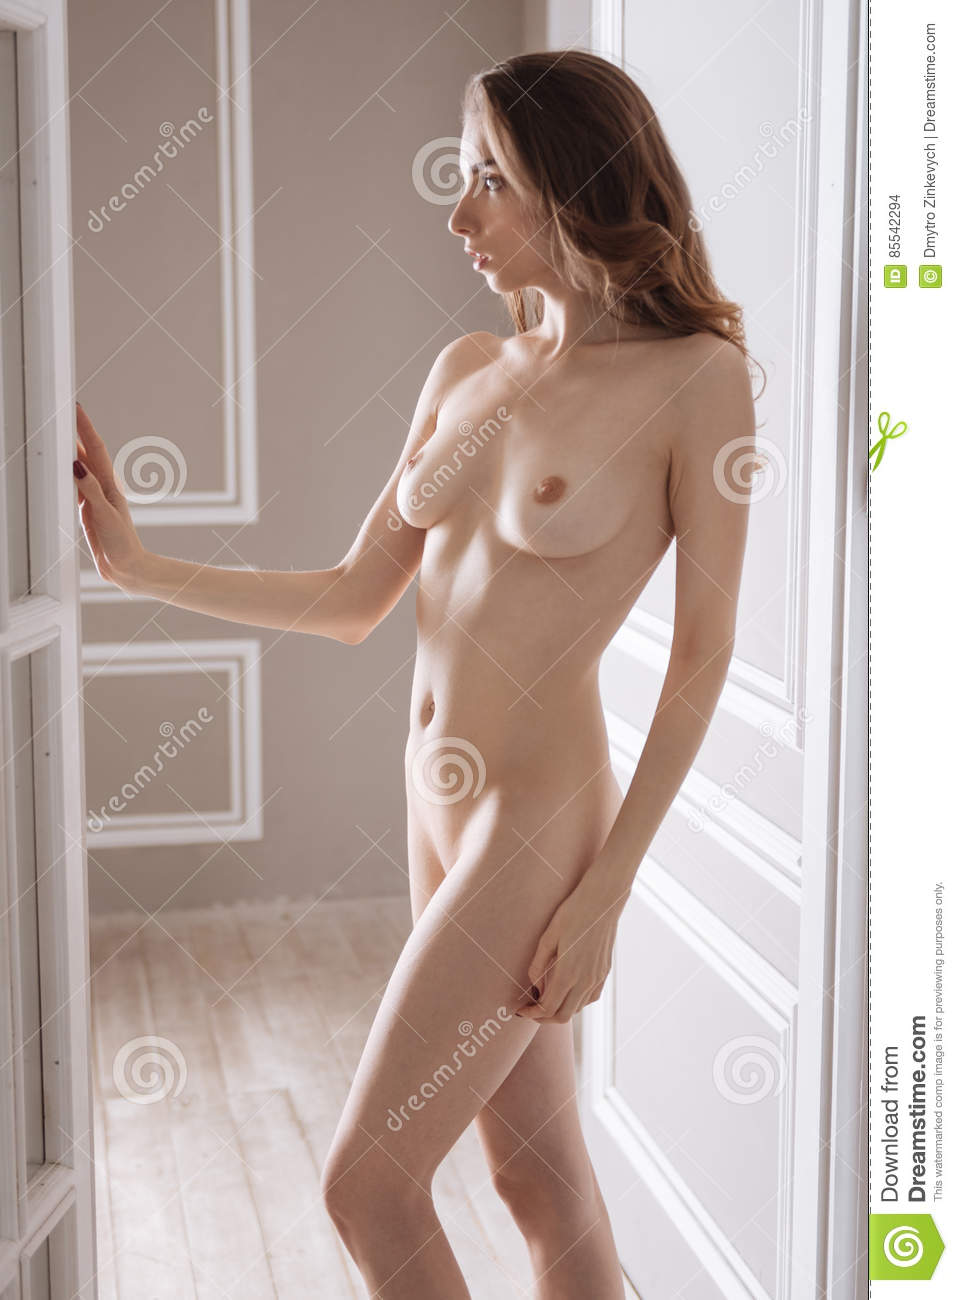 Fuck Porne Naked Chick Standing In Doorway